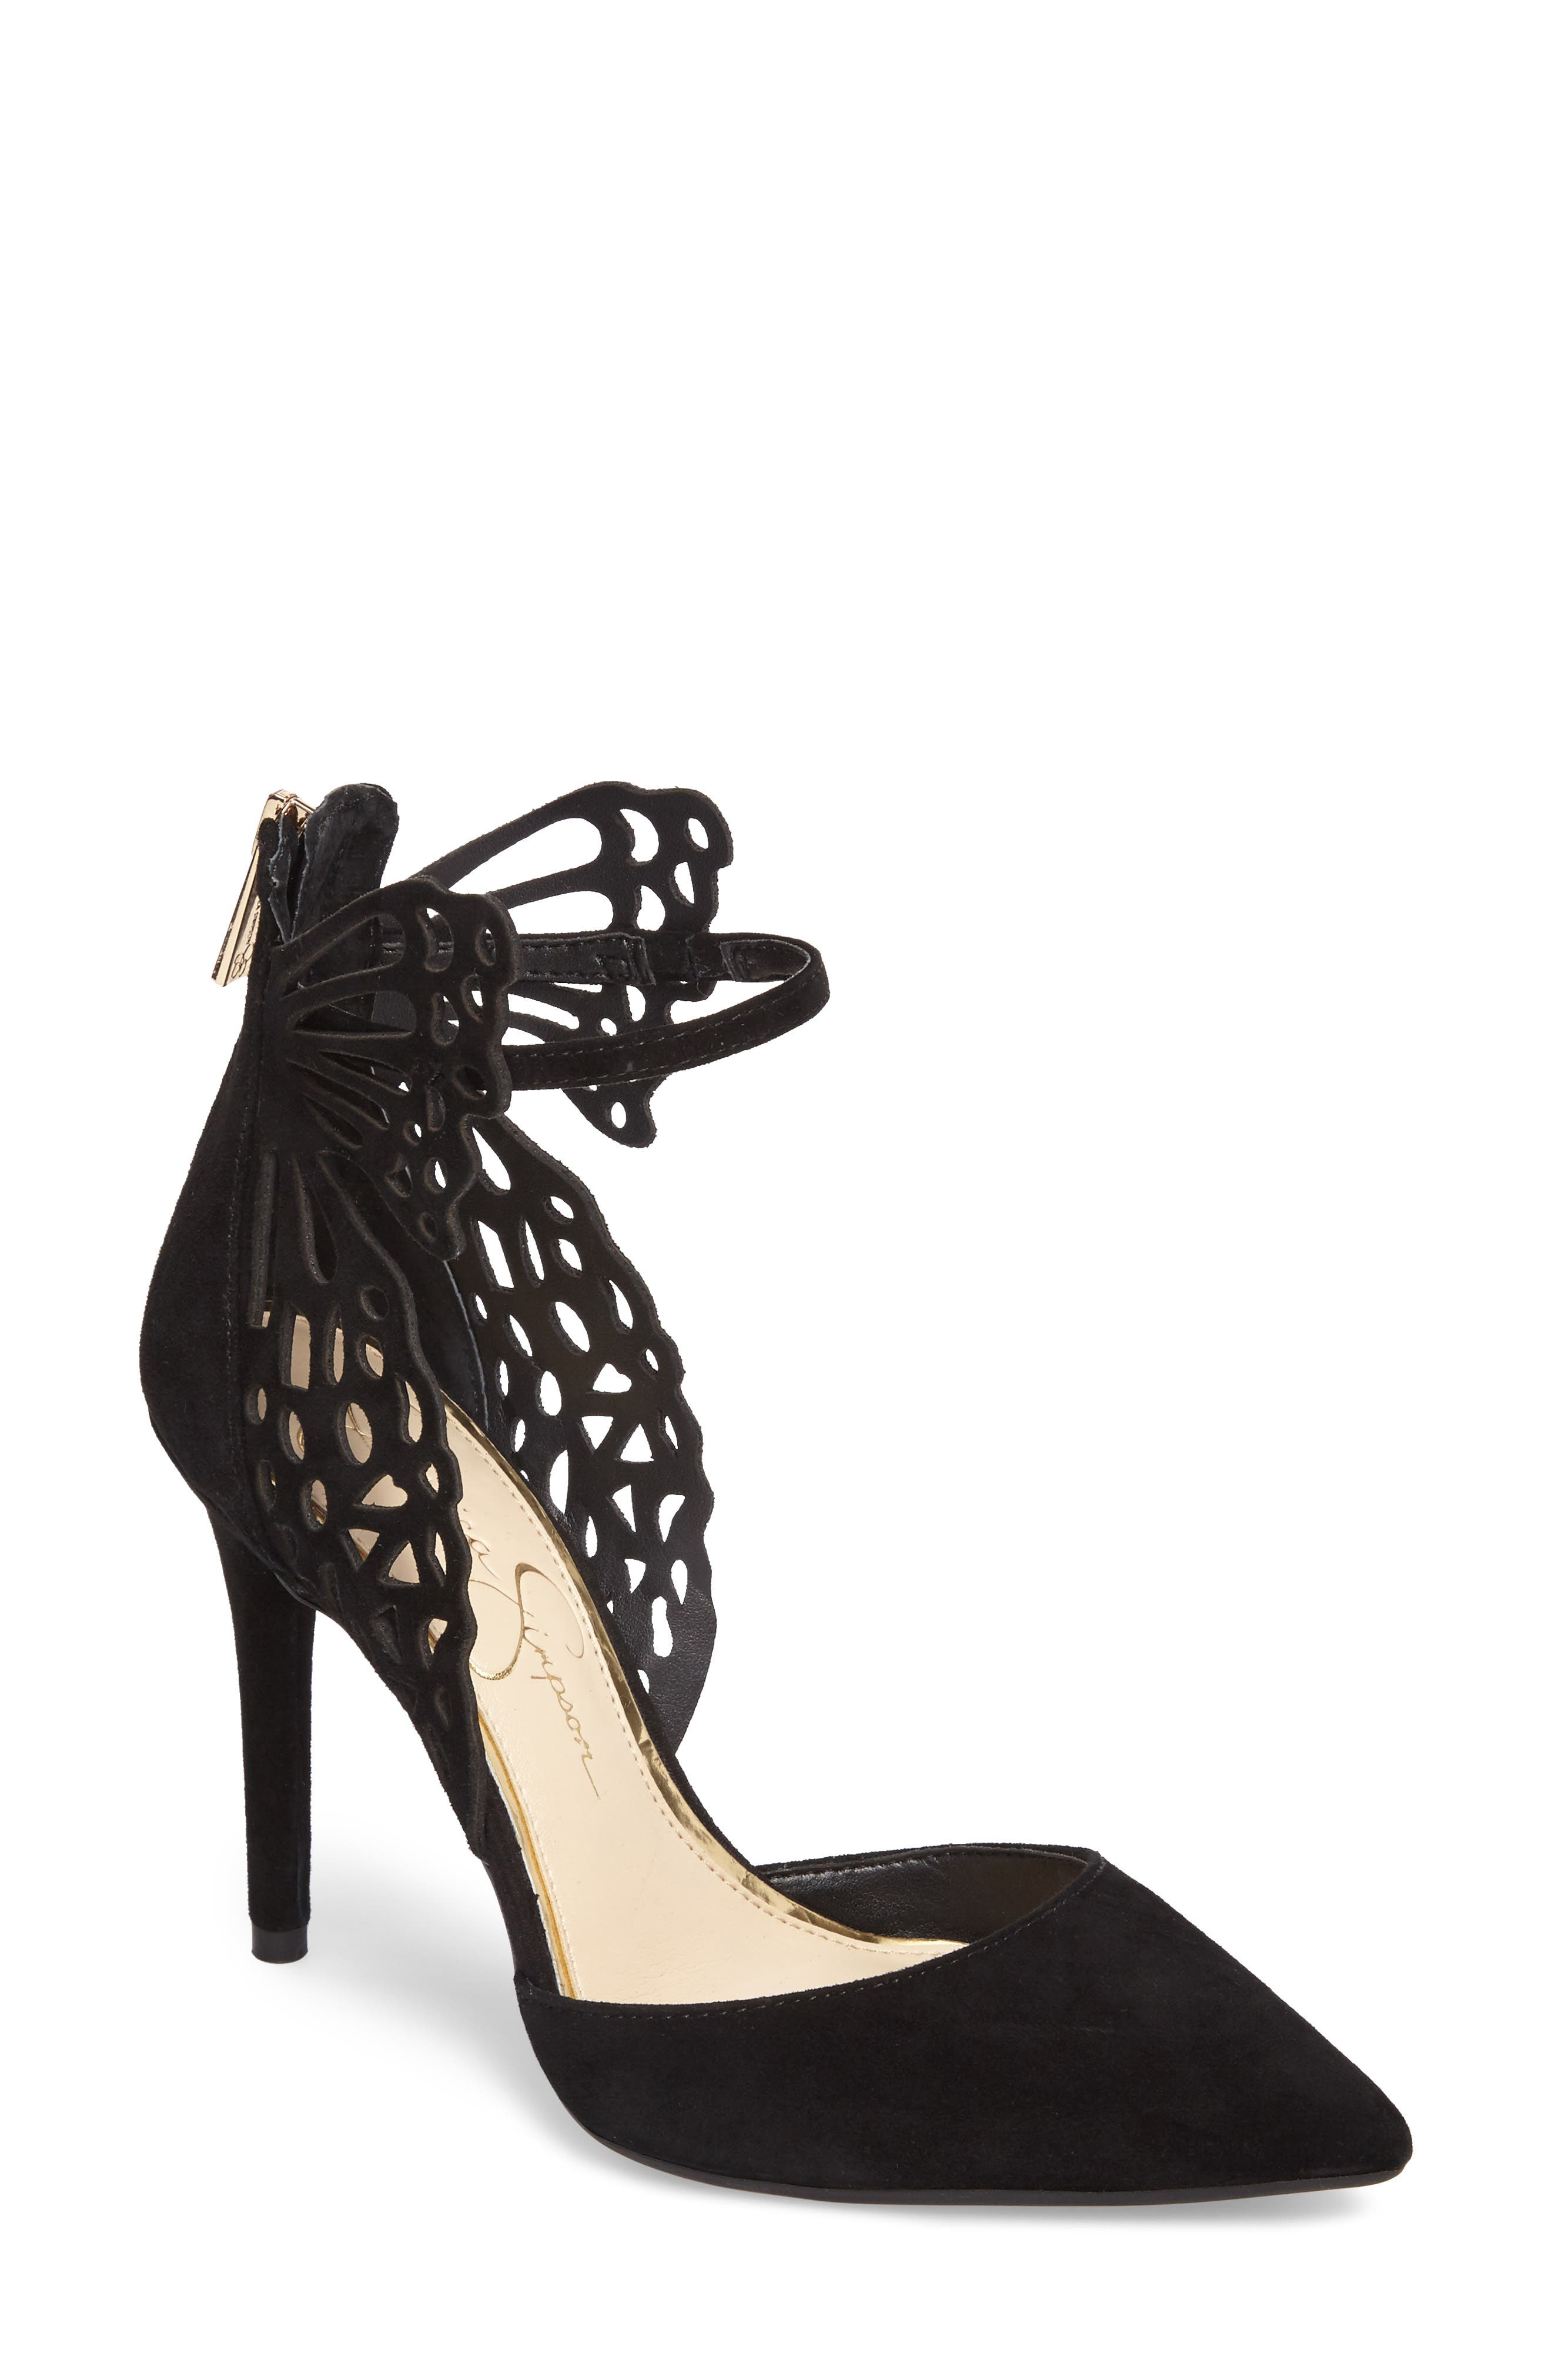 Leasia Butterfly Pump,                         Main,                         color, 001